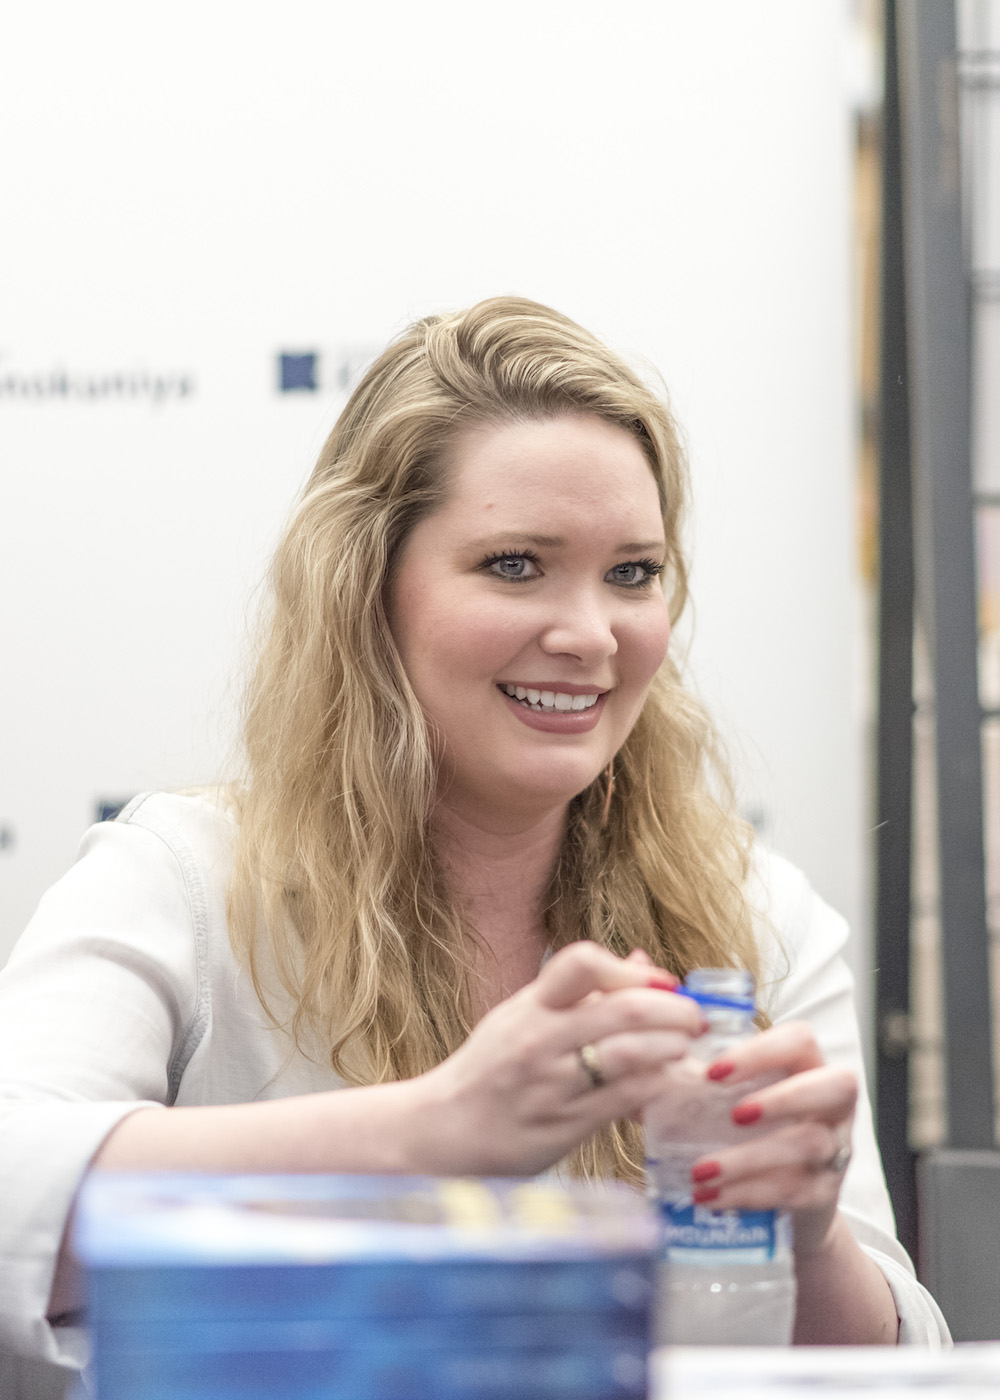 Sarah J. Maas Book Signing in Singapore: All smiles